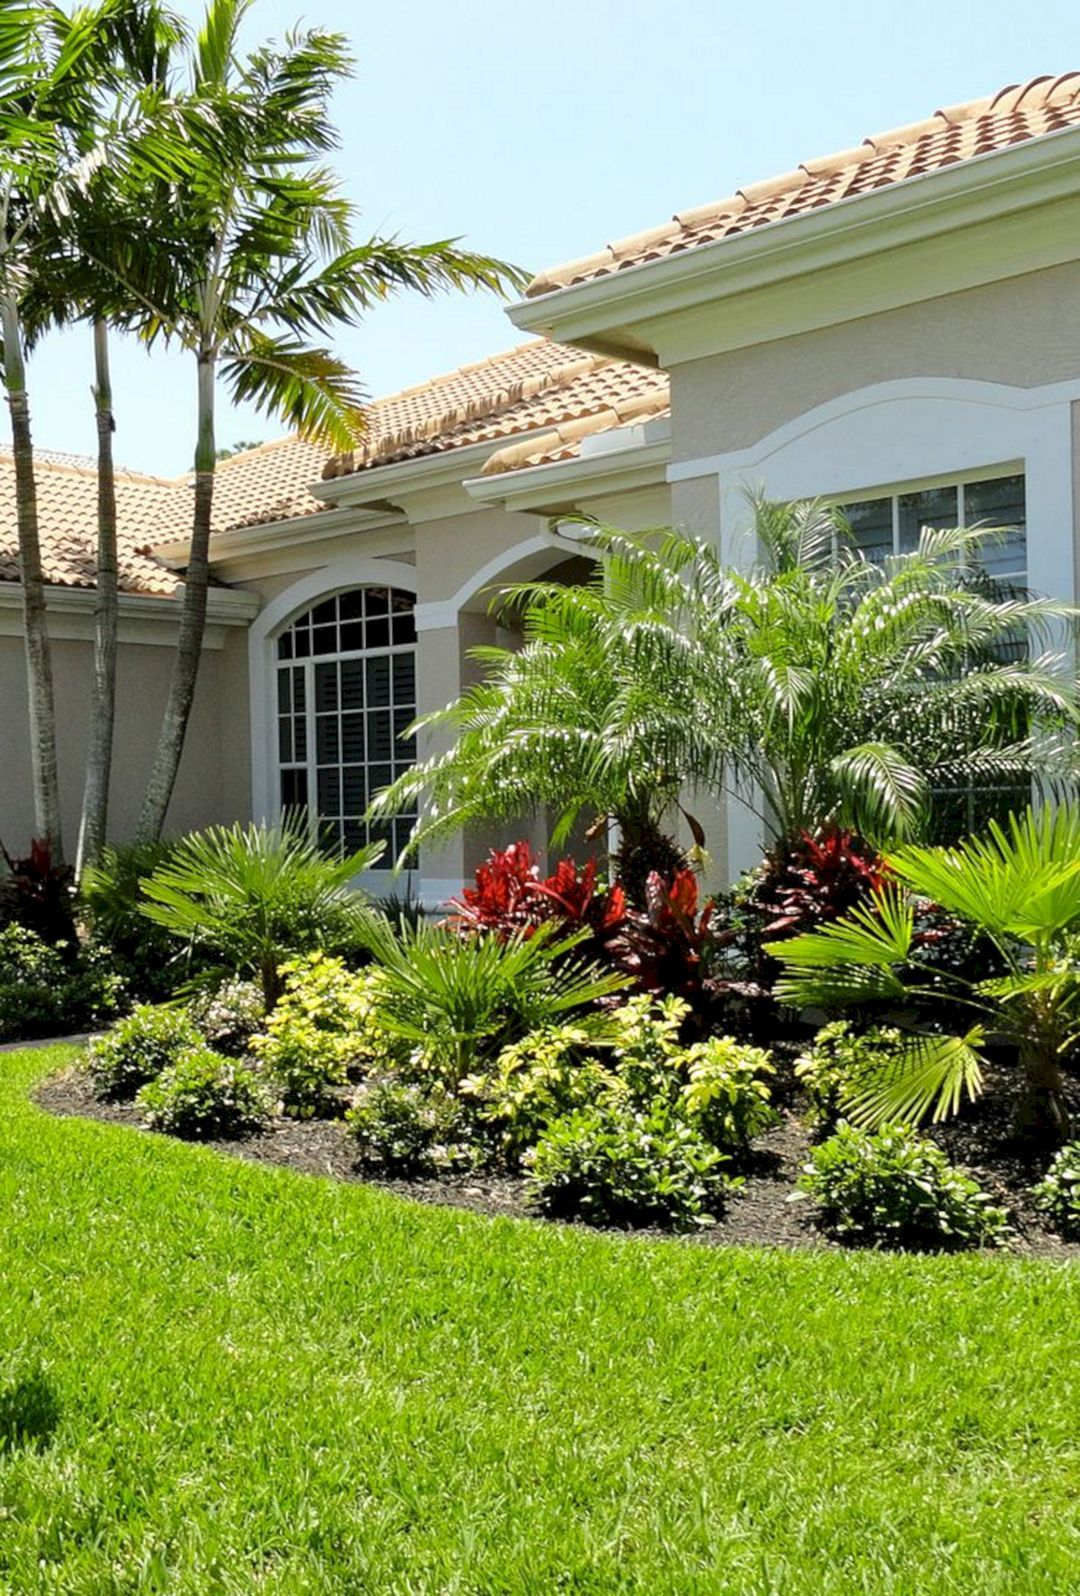 30 Fresh And Calming Tropical Garden Ideas In 2020 Small Front Yard Landscaping Tropical Backyard Landscaping Front Yard Landscaping Design Florida backyard garden design ideas